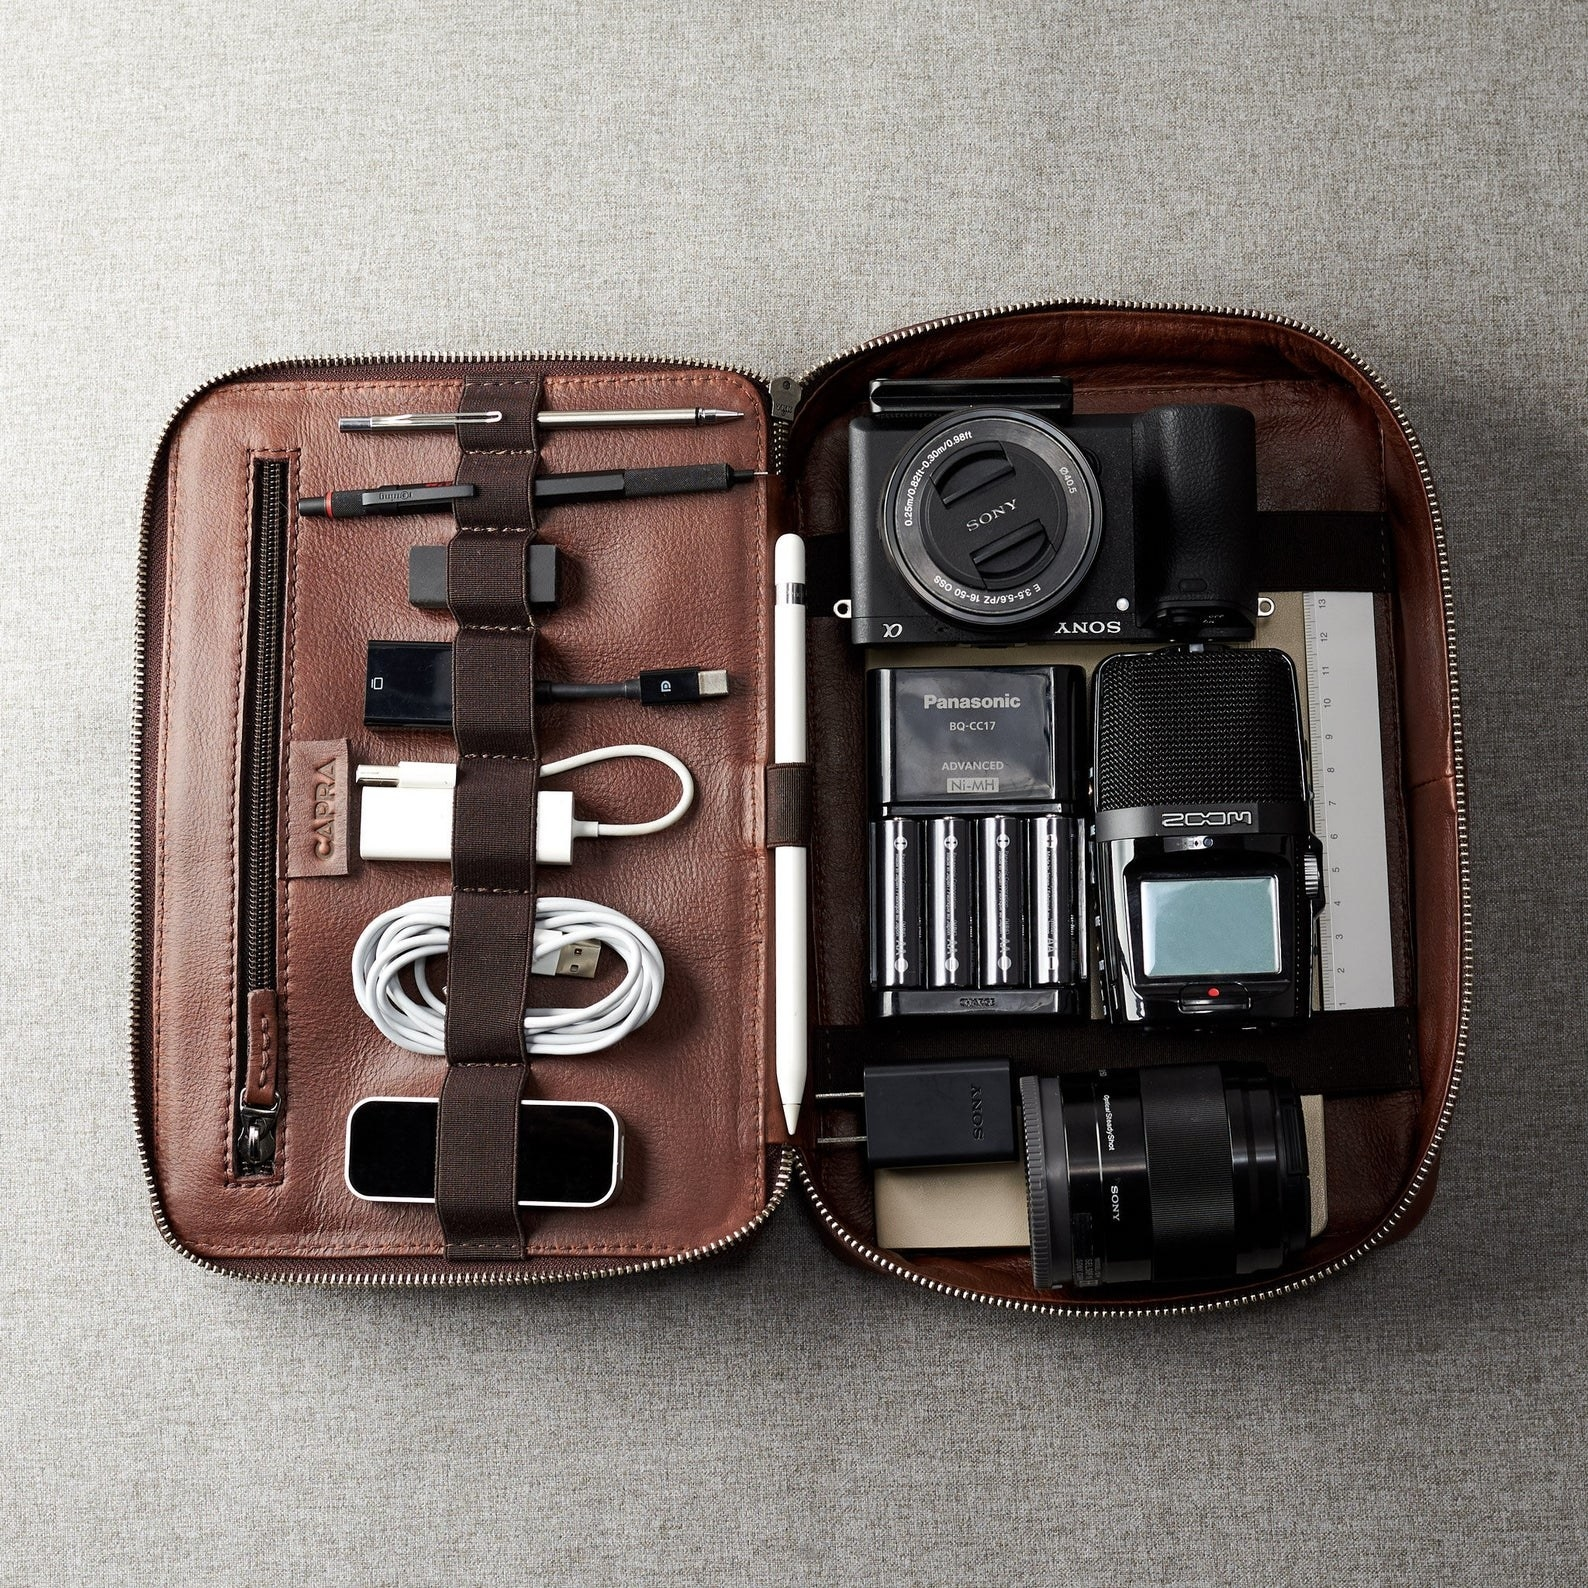 brown leather travel organizer used to store tech accessories